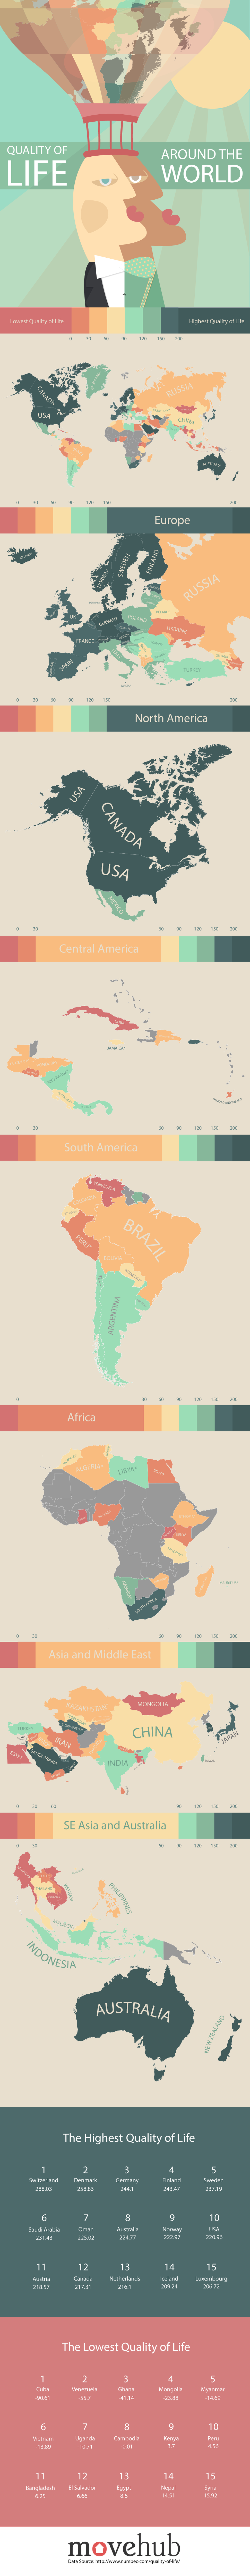 Mapping the Quality of Life Around the World